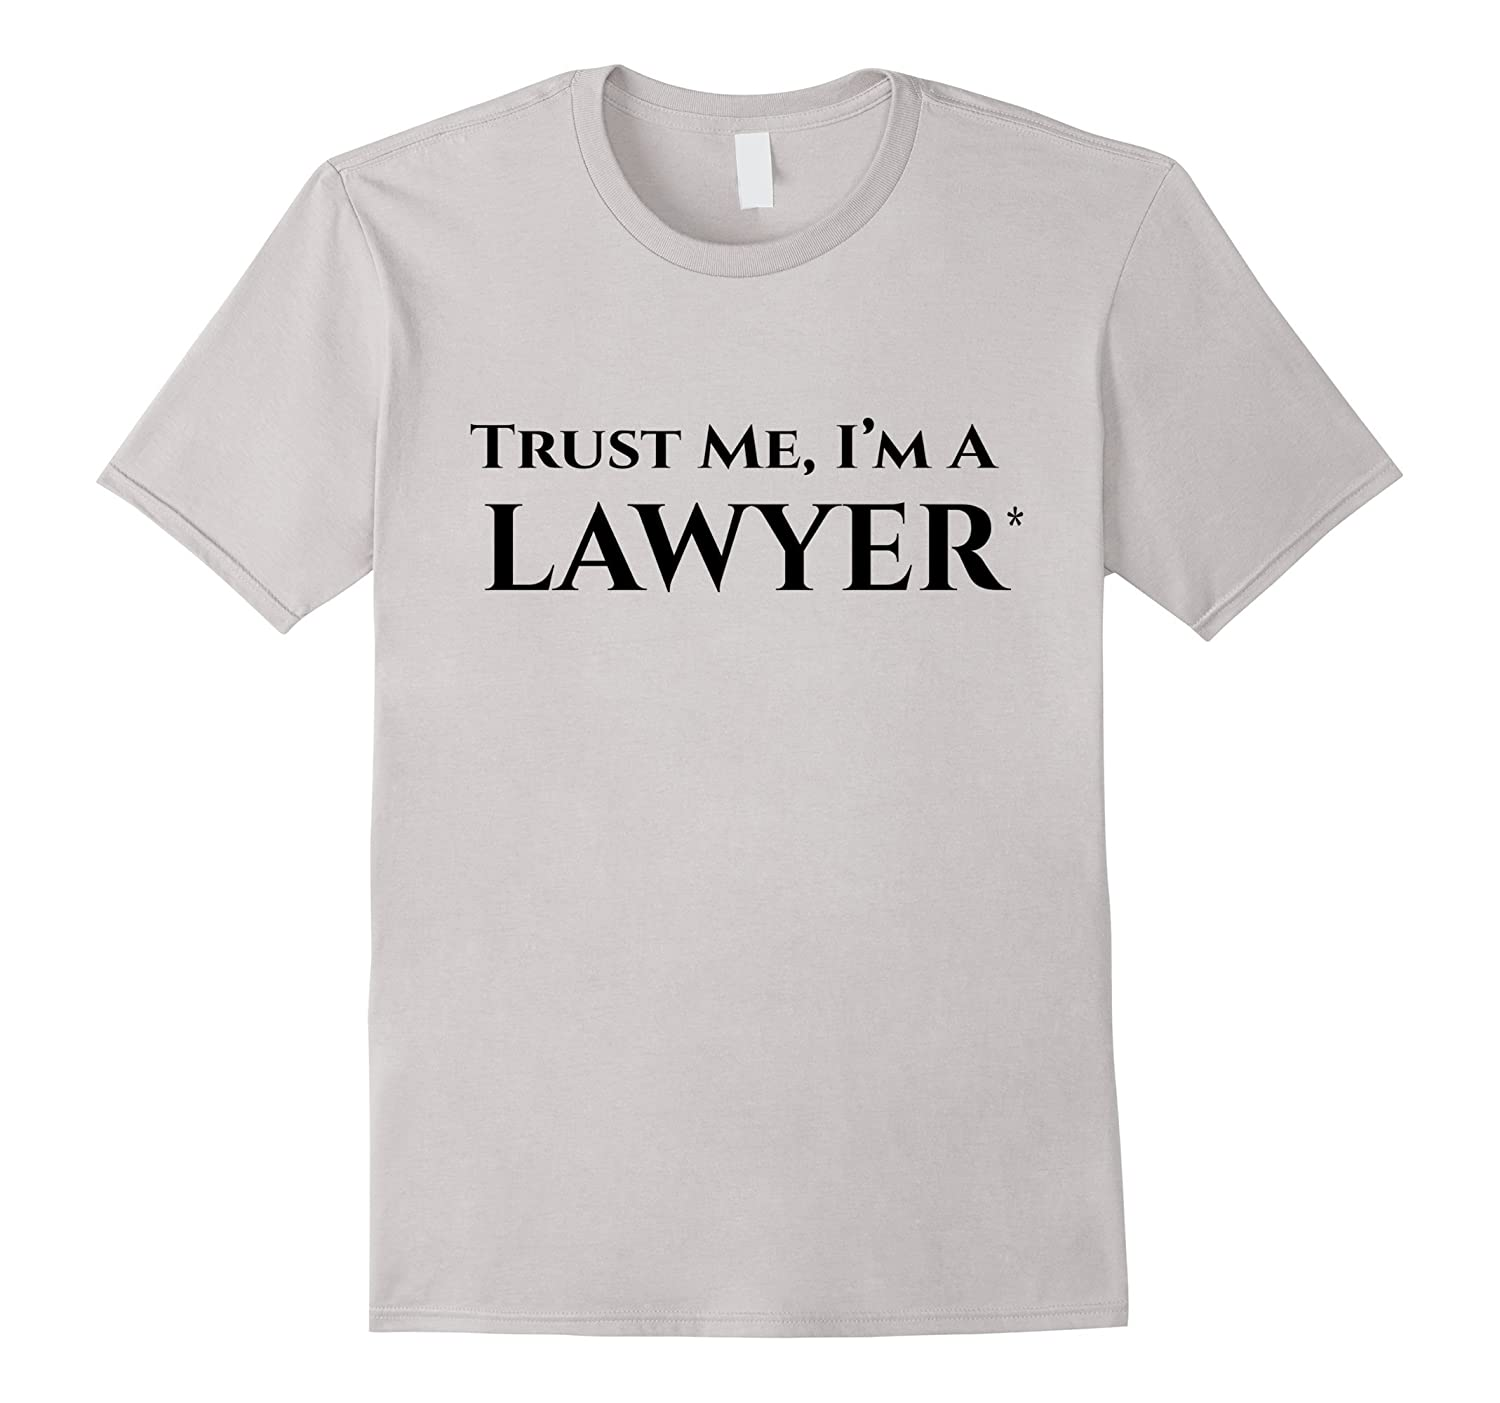 Trust Me, I'm a Lawyer T-Shirt - Disclaimer on Back-TH